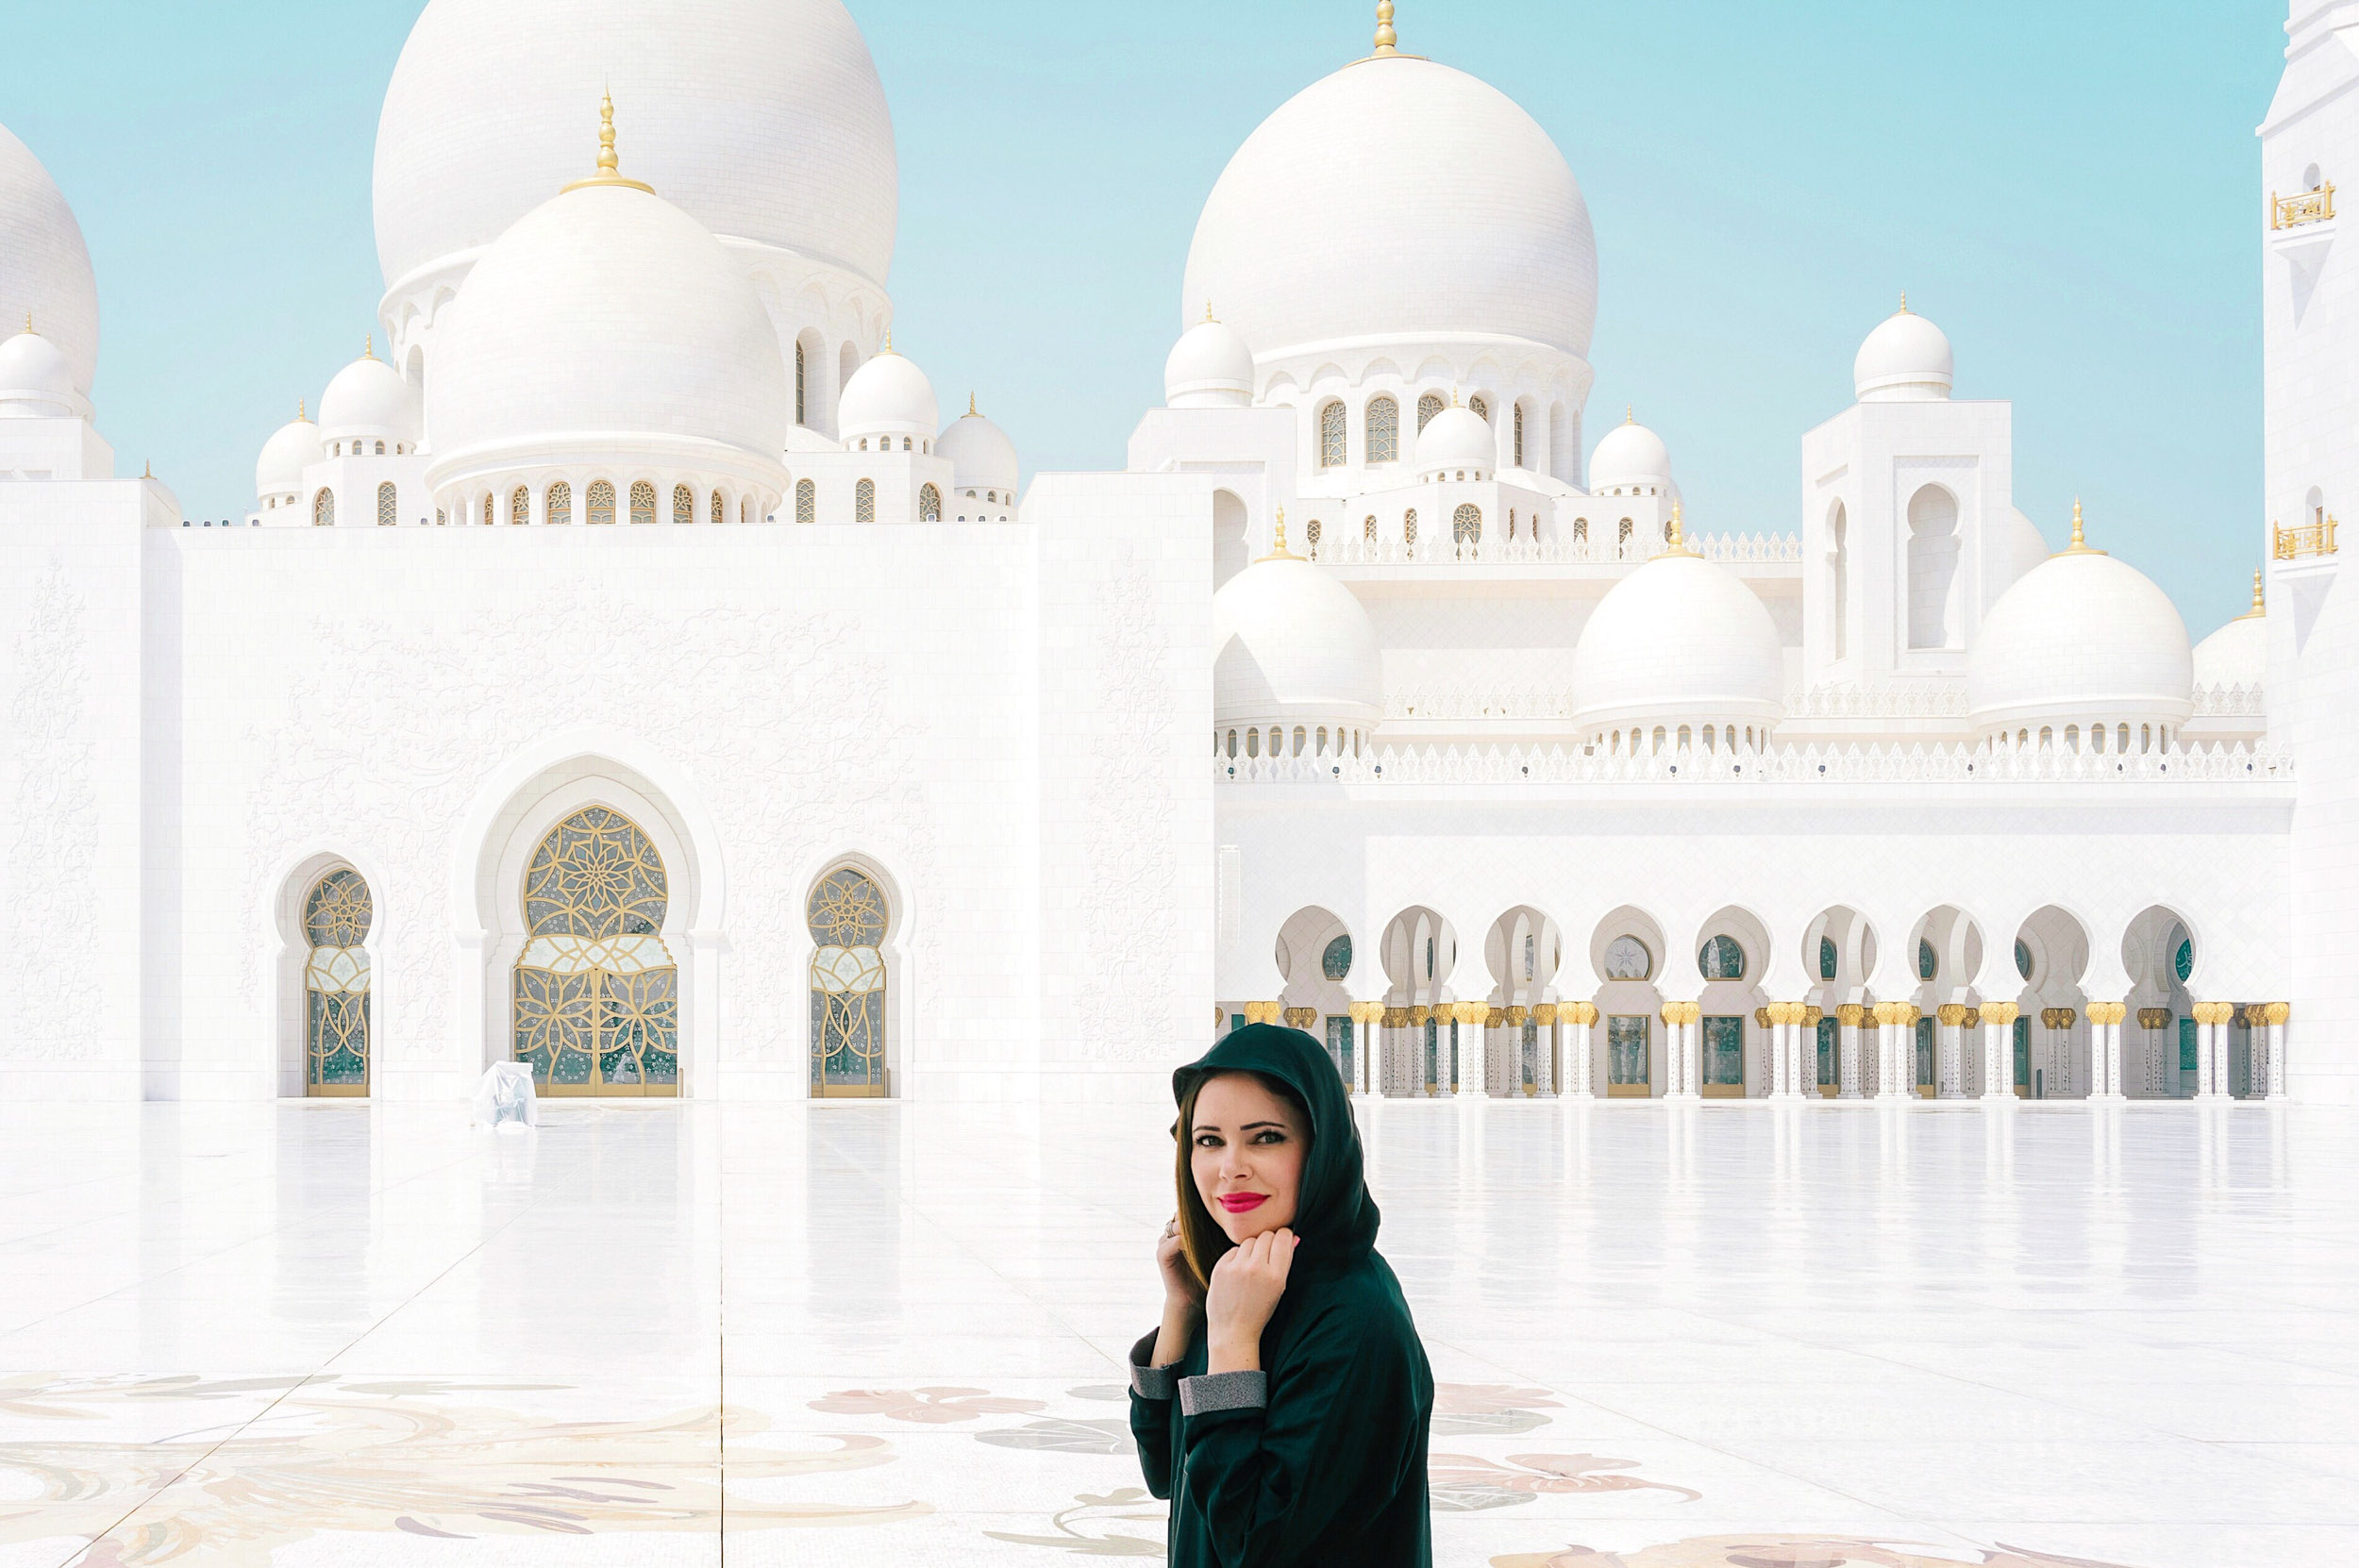 Things to do in Dubai - visit the Sheikh Zayed Grand Mosque